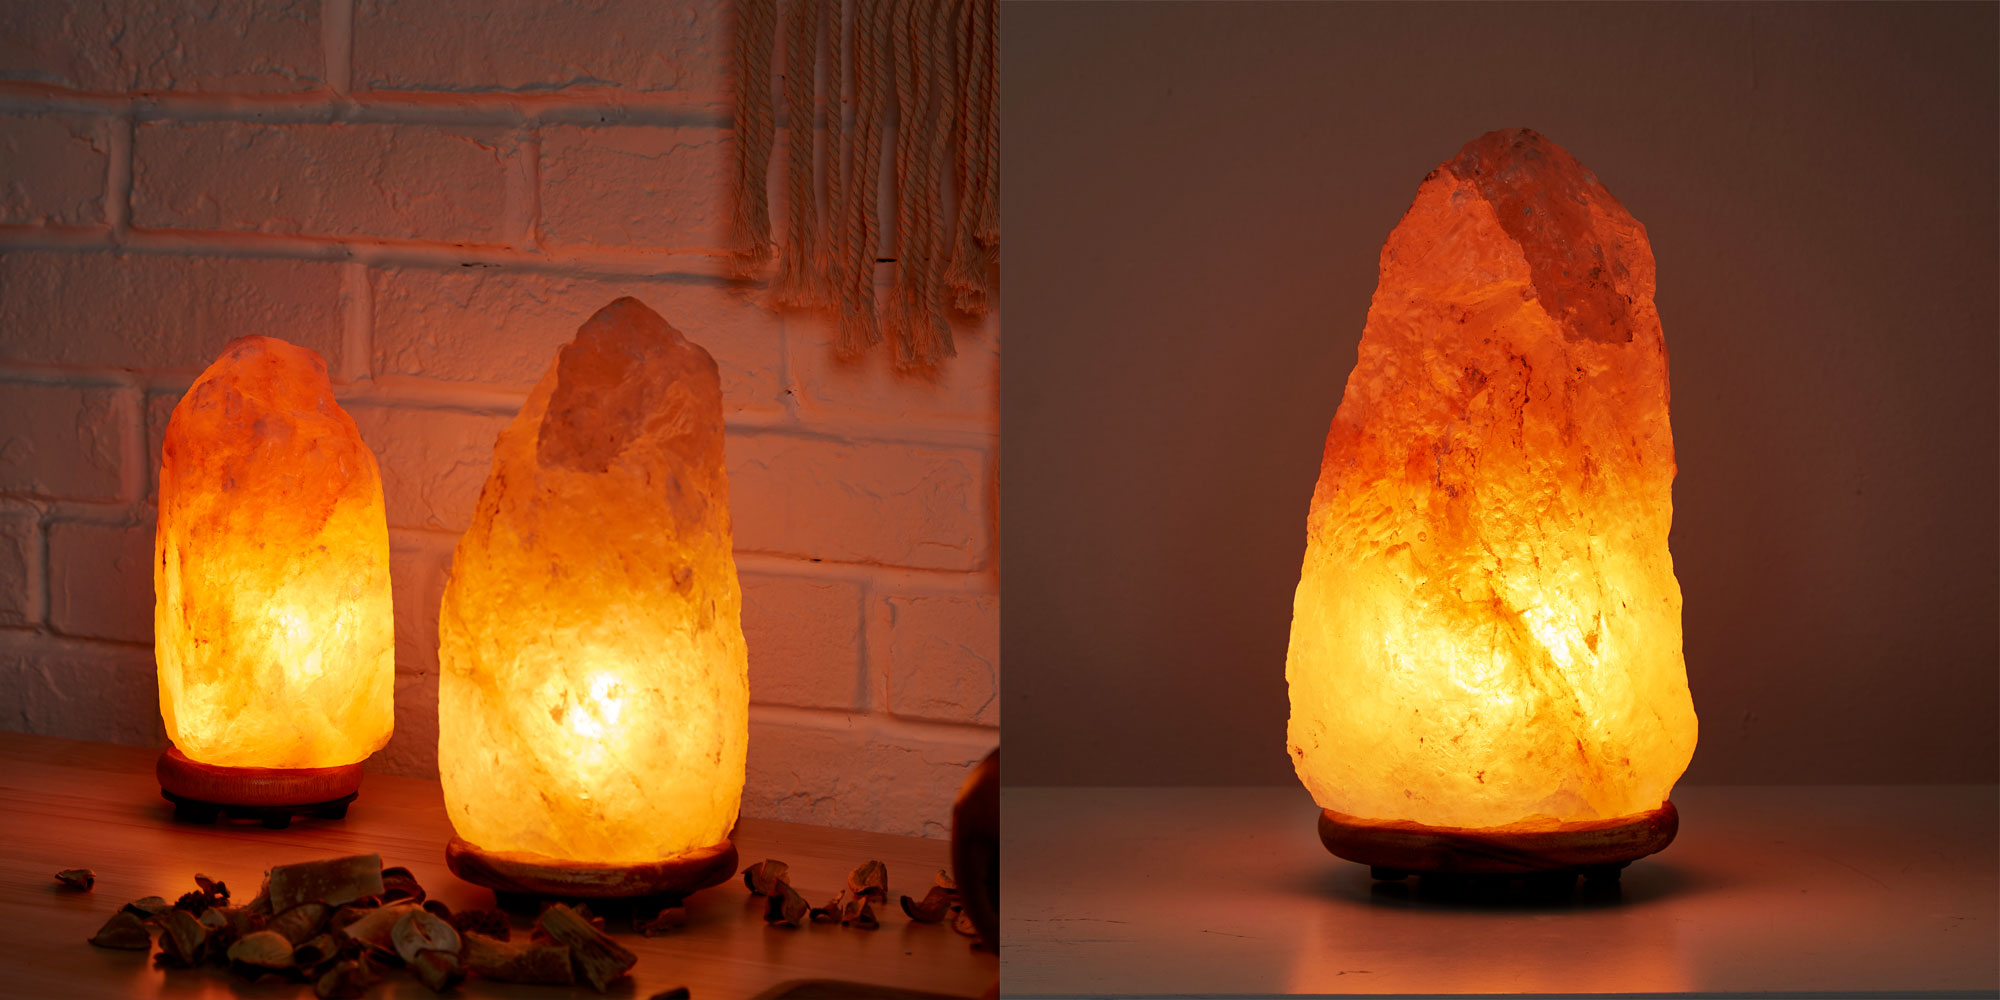 Add ambiance to any room w/ a 7-10 pound Himalayan salt lamp for just $10 at Walmart